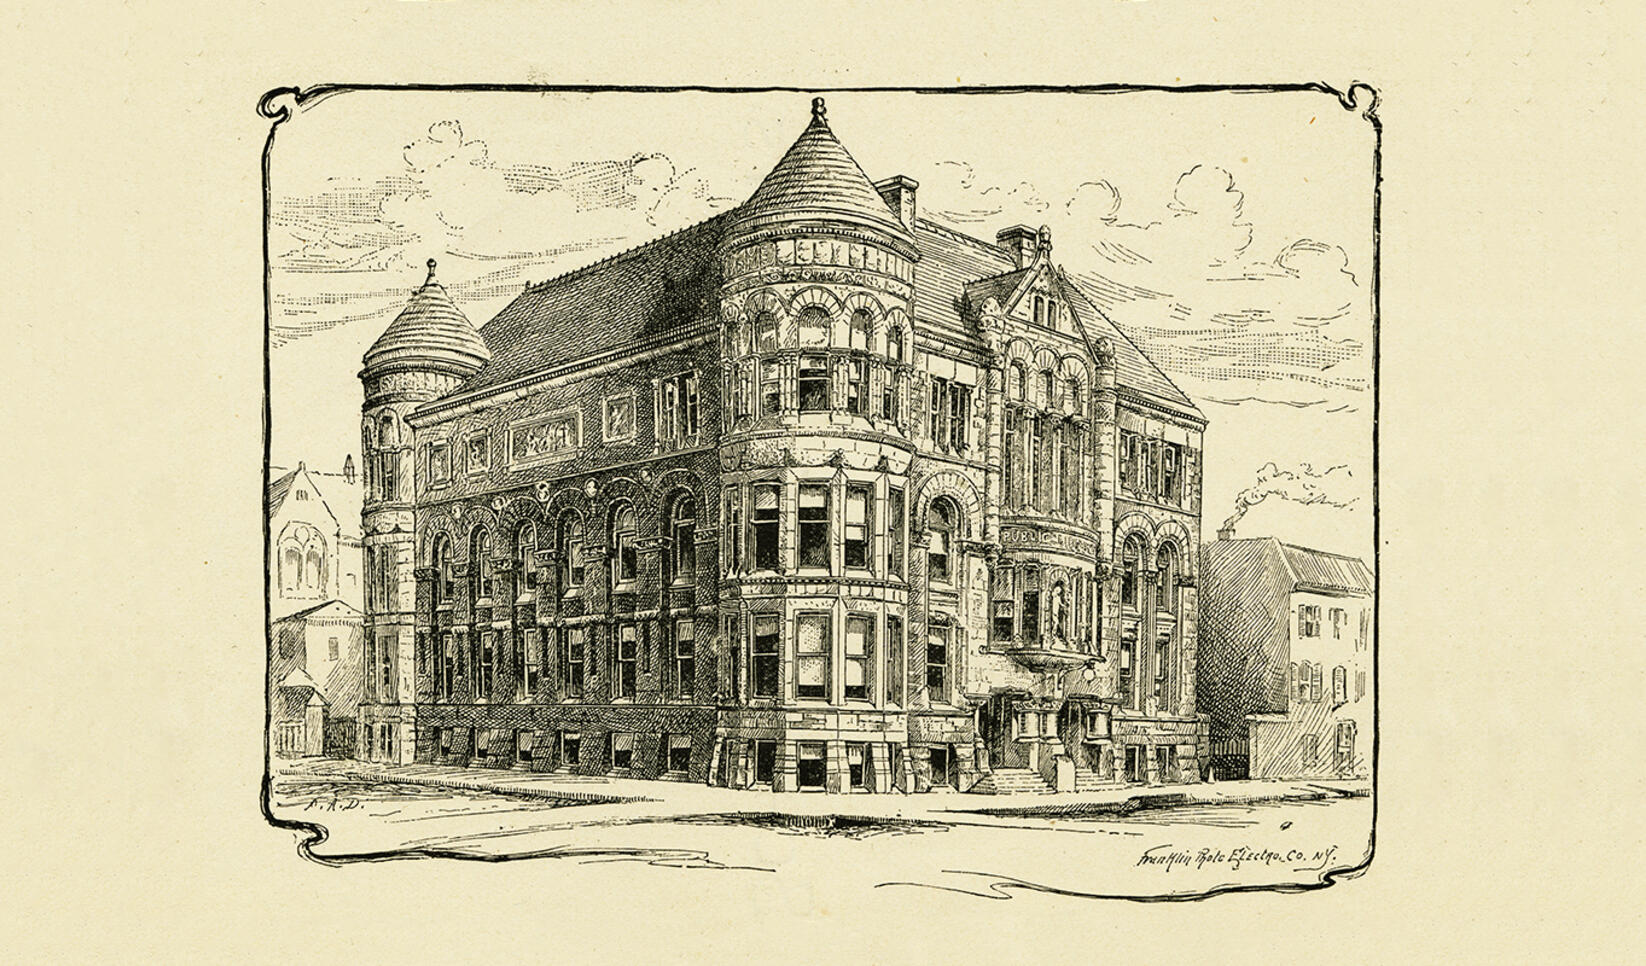 Illustration of the Public Library, which housed the Minneapolis School of Fine Arts